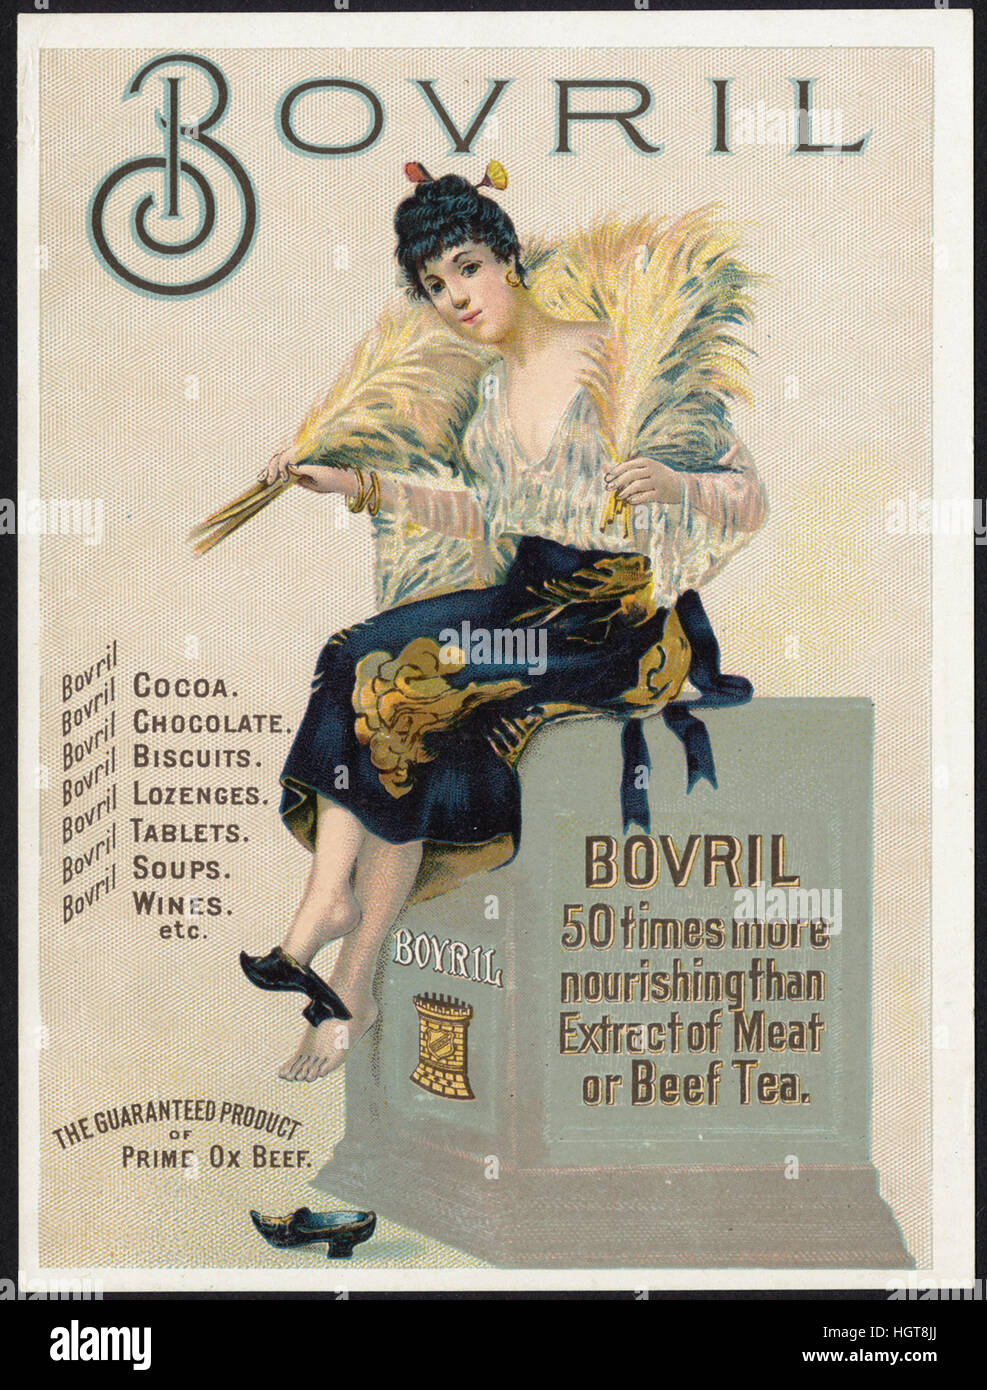 Bovril, 50 times more nourishing than extract of meat or beef tea. [front]  - Food Trade Card - Stock Image